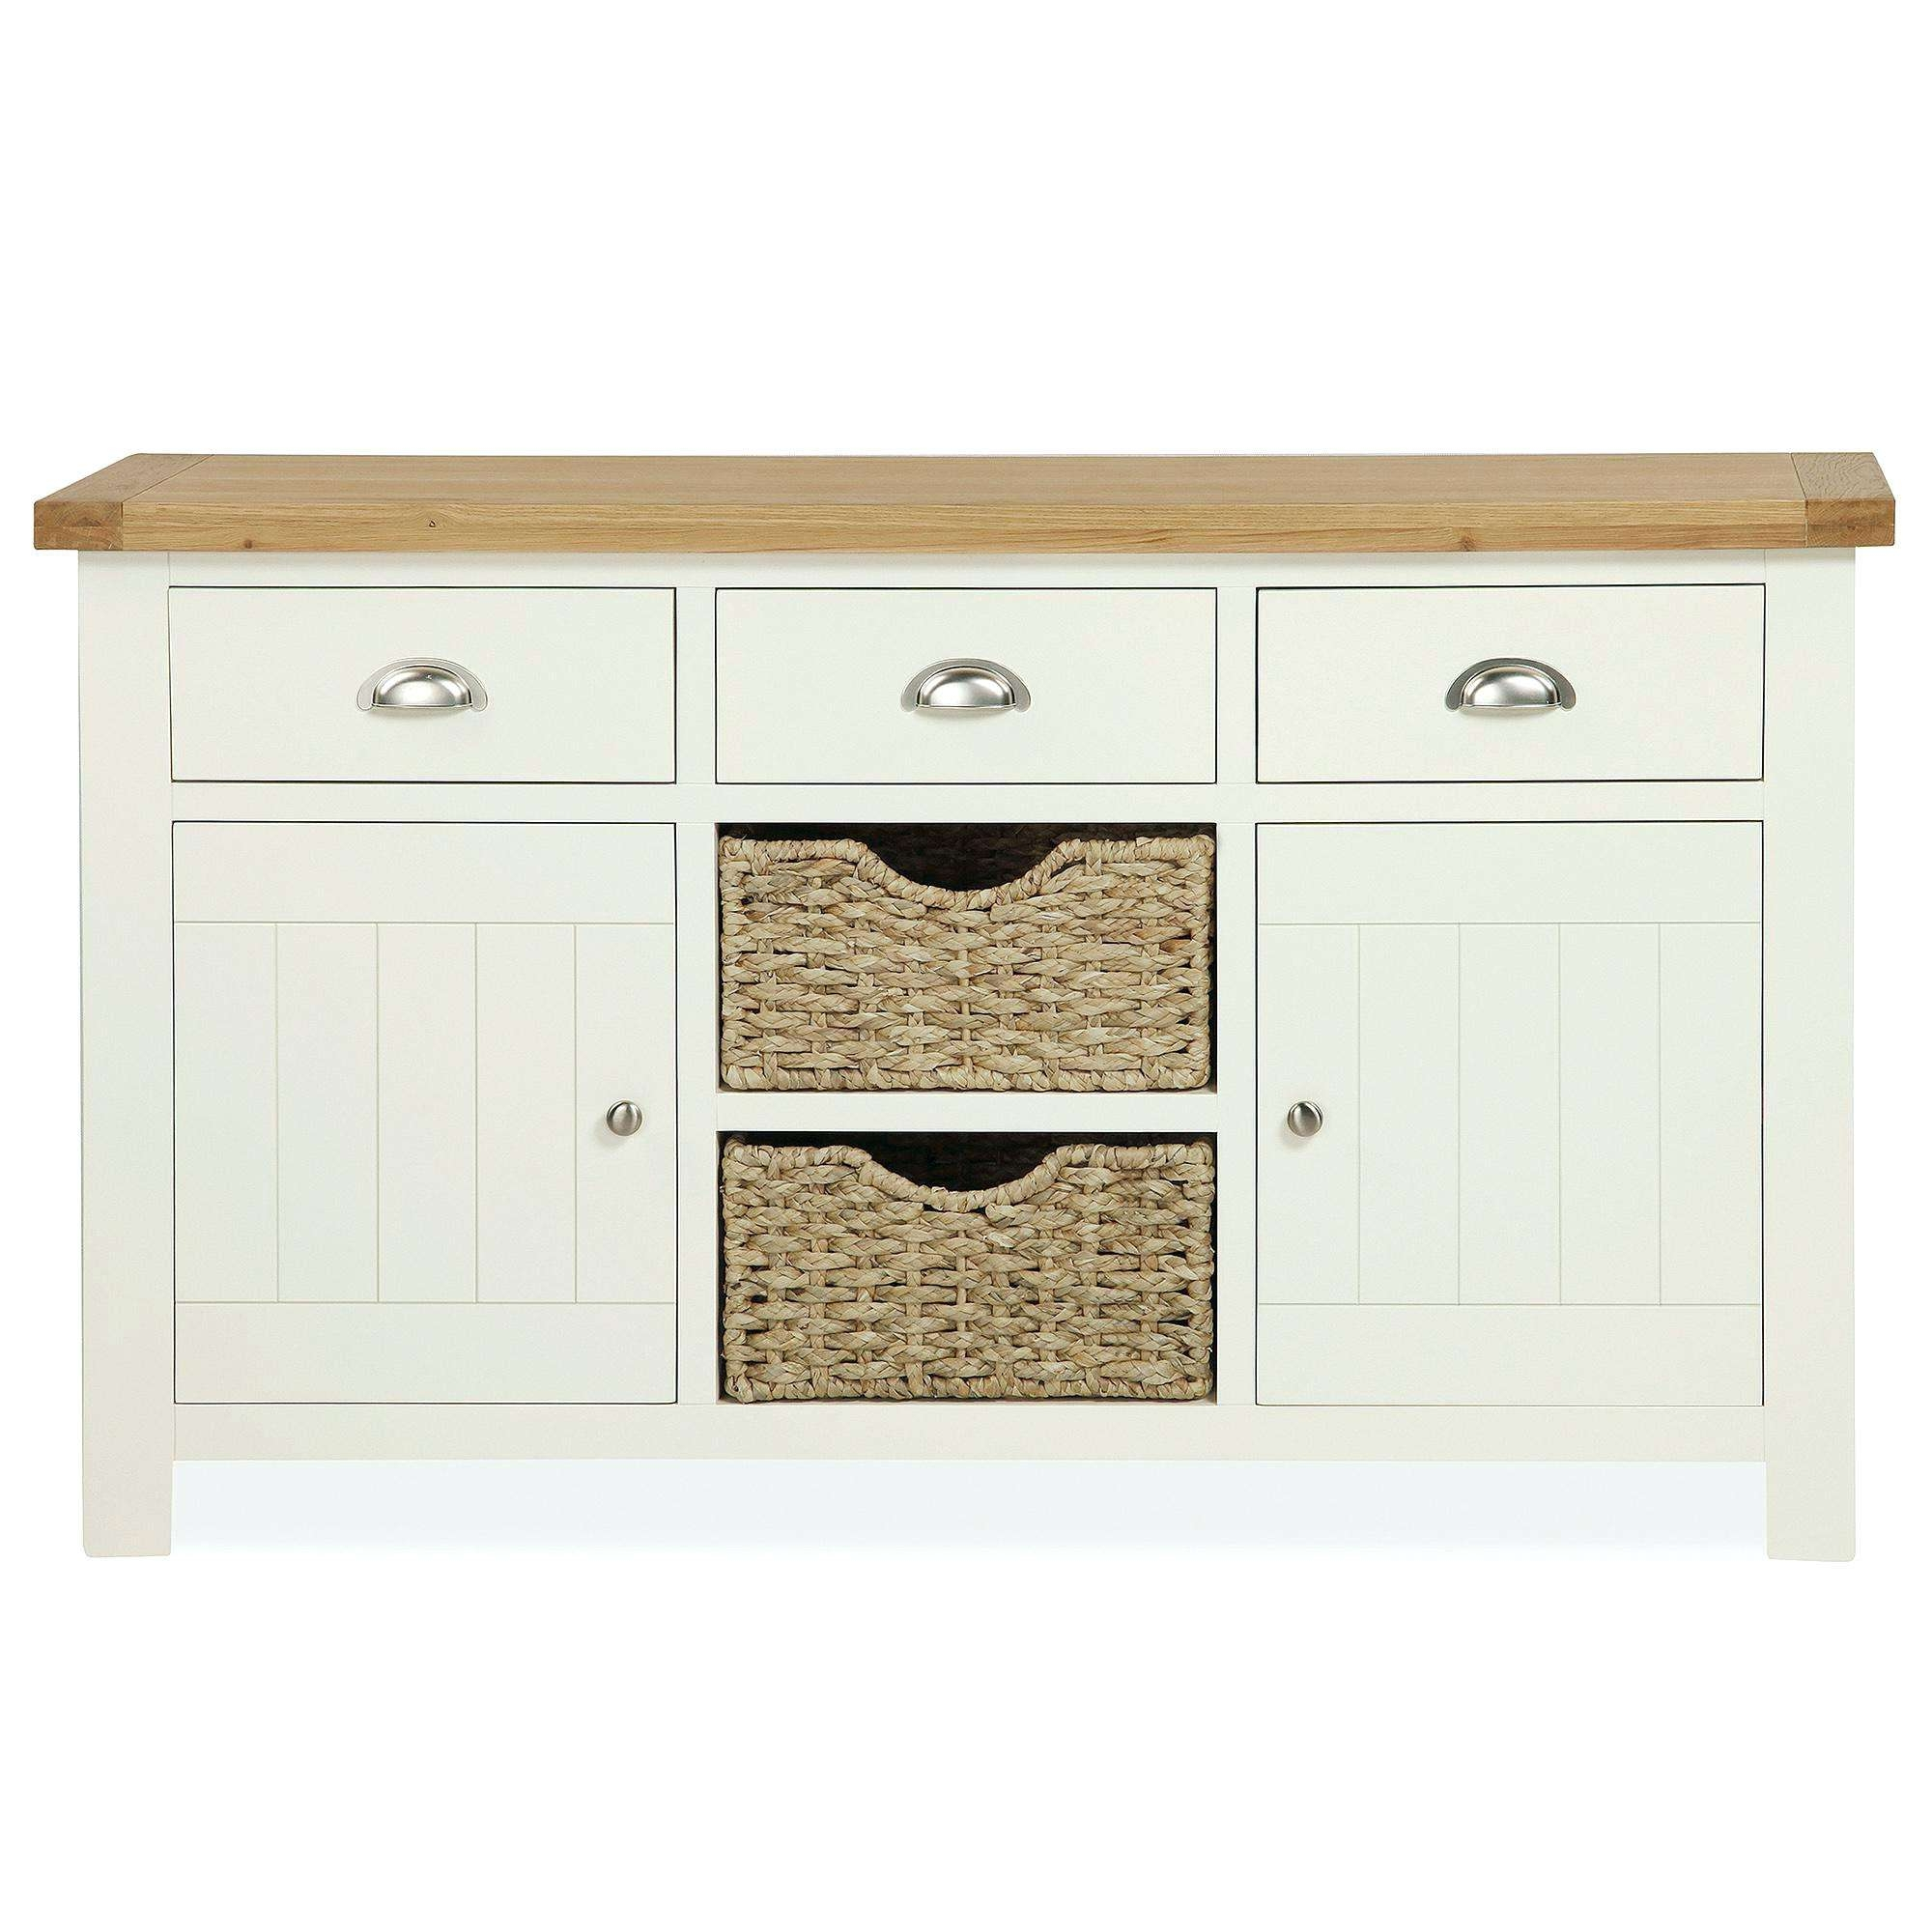 Cream Sideboard Cream Solid Oak Sideboard Large Cream Sideboard Pertaining To High Gloss Cream Sideboards (View 9 of 20)